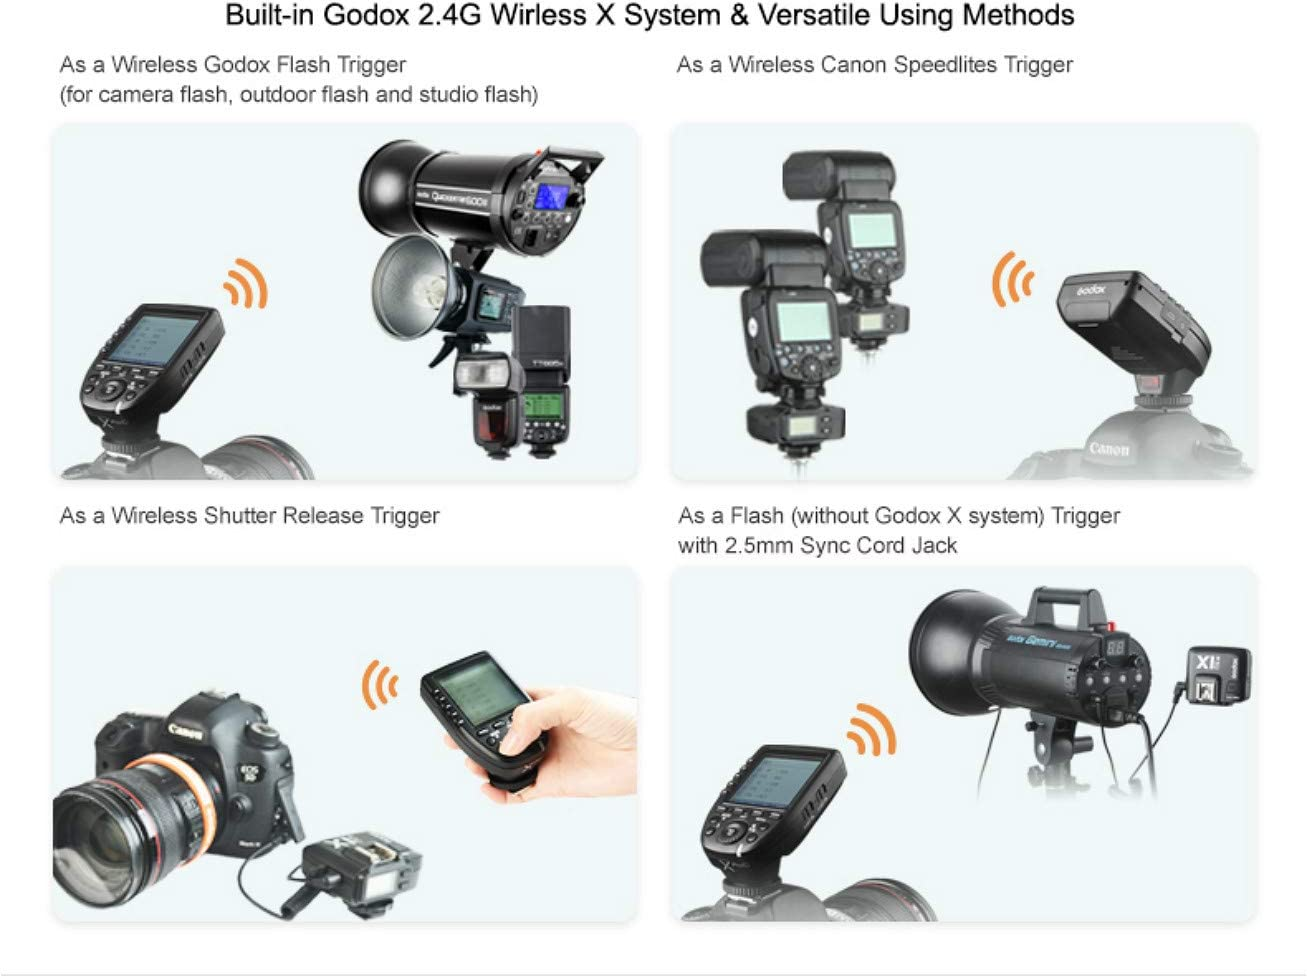 XPro-S for Sony Godox XPro TTL Wireless Trigger,1//8000s High-Speed-Sync,5 Dedicated Group Bottons and 11 Customizable Functions